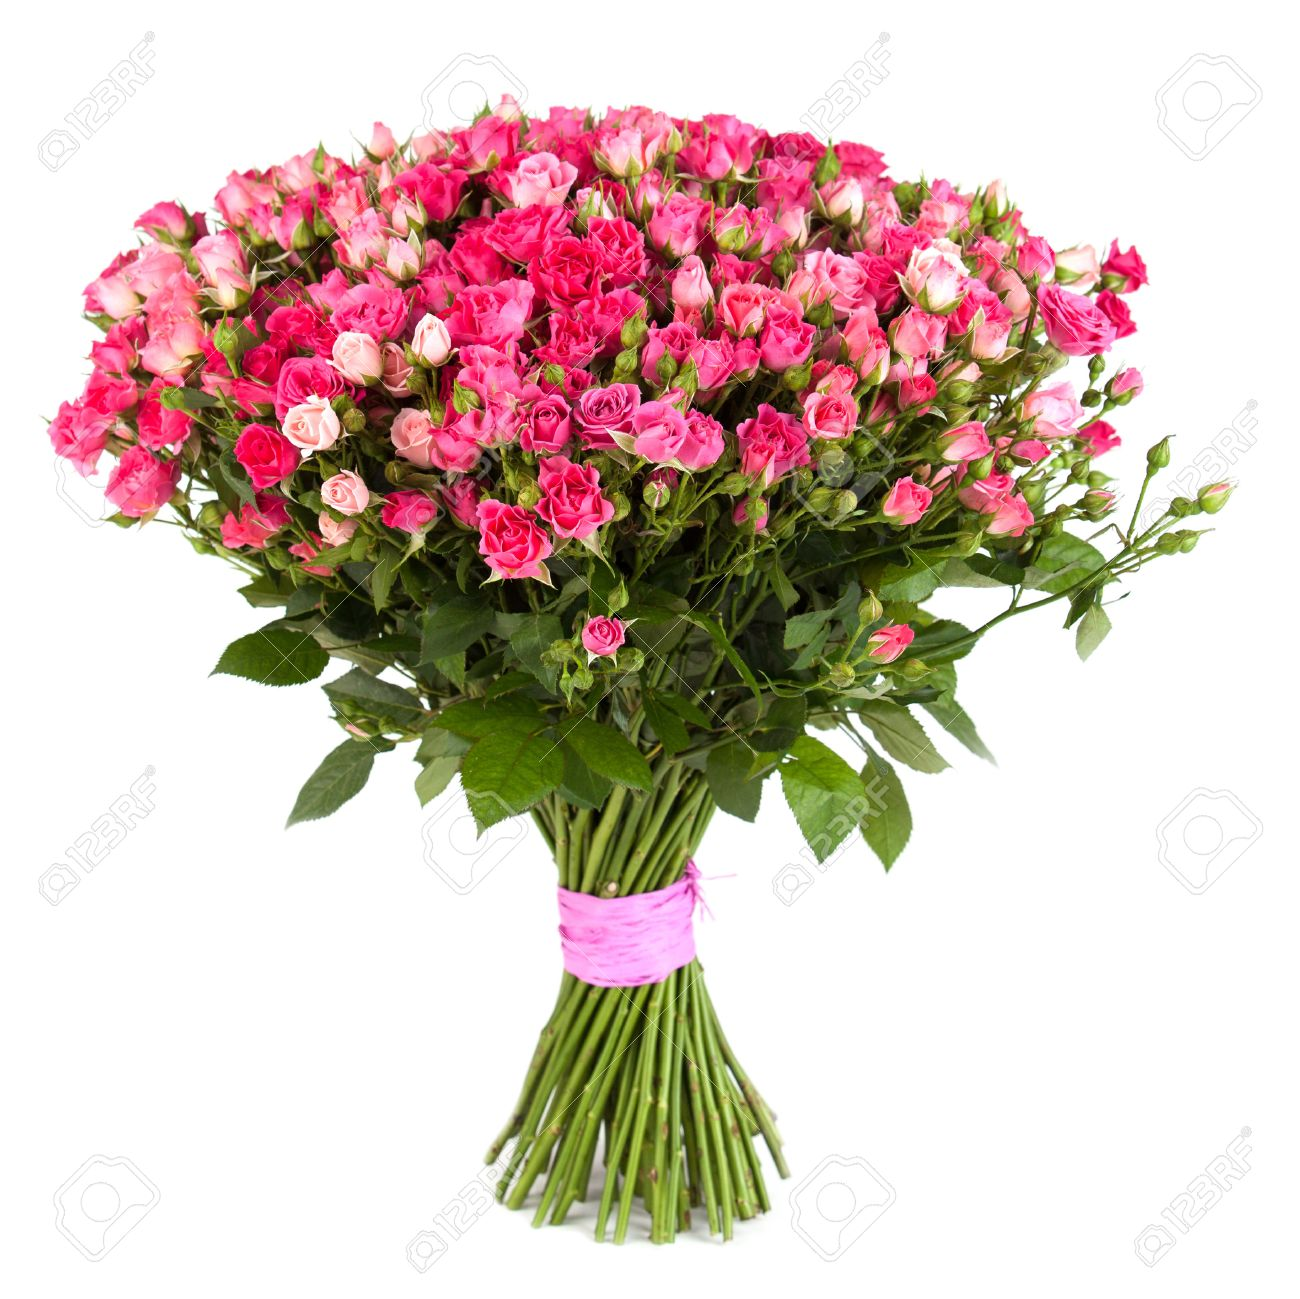 Big flower bouquet from pink roses isolated on white background big flower bouquet from pink roses isolated on white background closeup stock photo dhlflorist Gallery